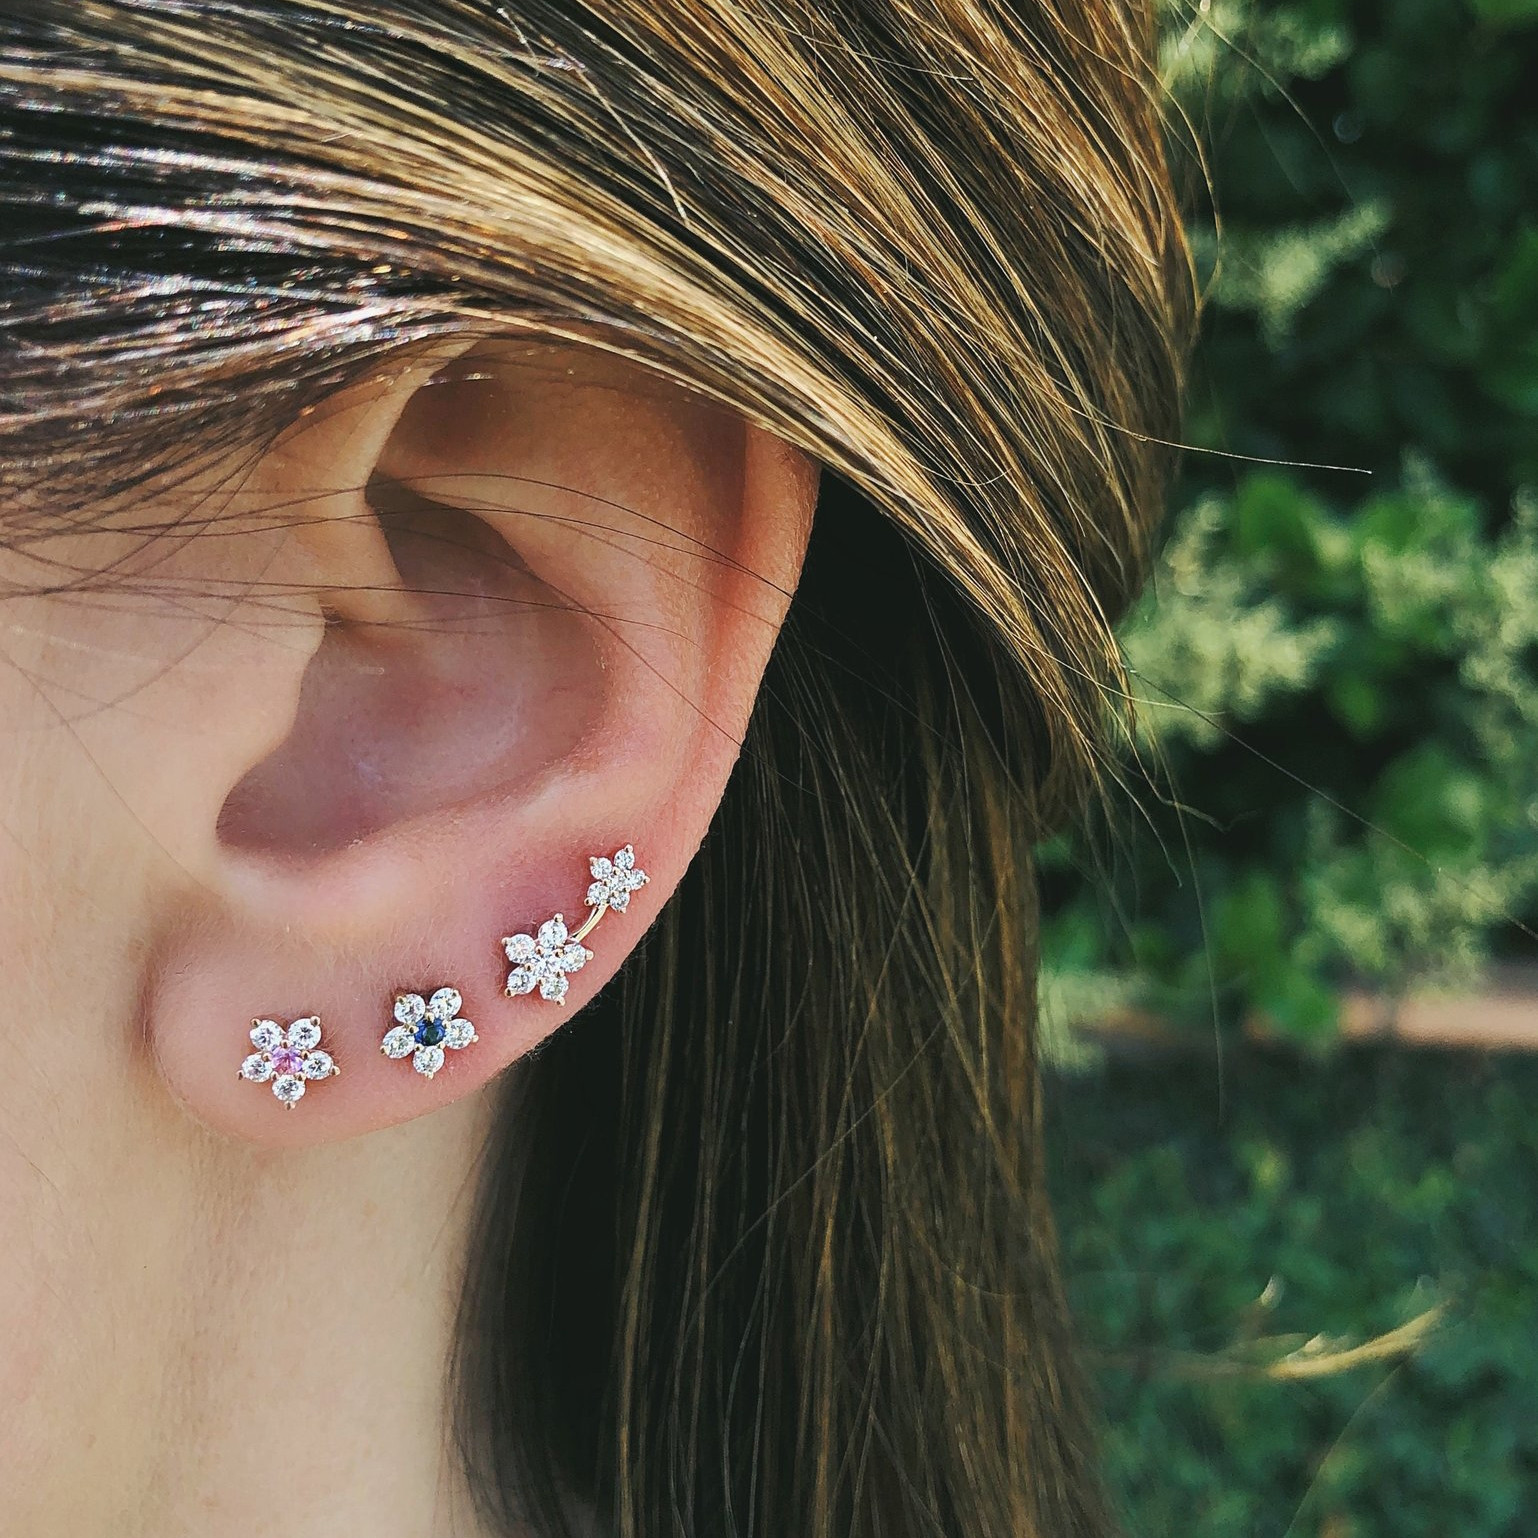 Diamond Double Flower Stud Earrings by EF Collection on Model